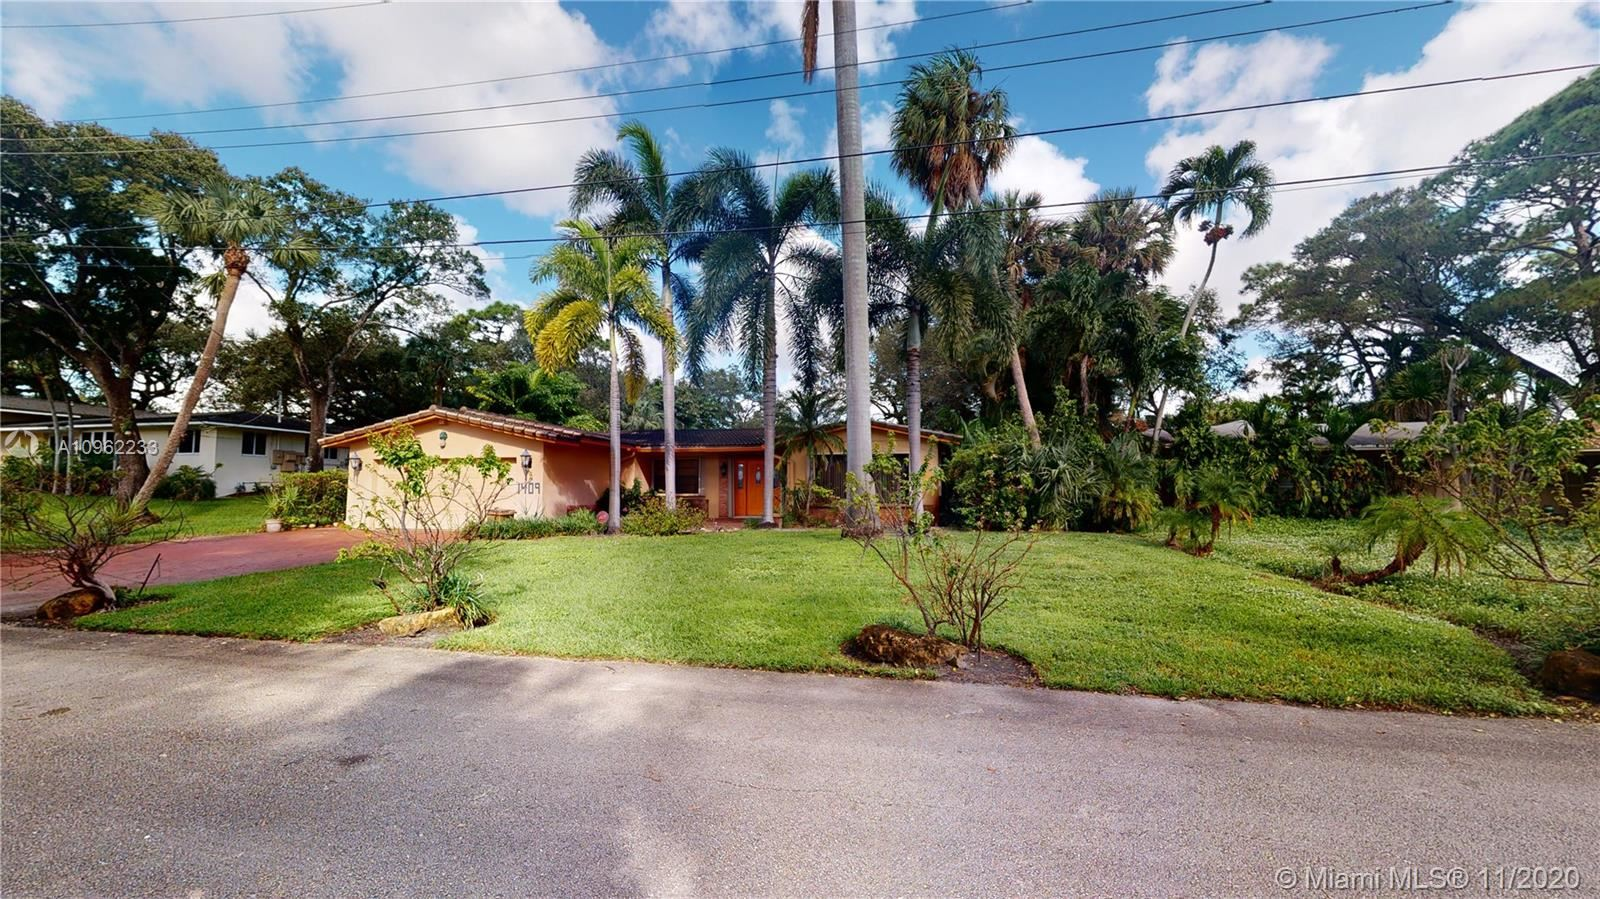 1409 SW 12th Ct, Fort Lauderdale, FL 33312 - #: A10962233